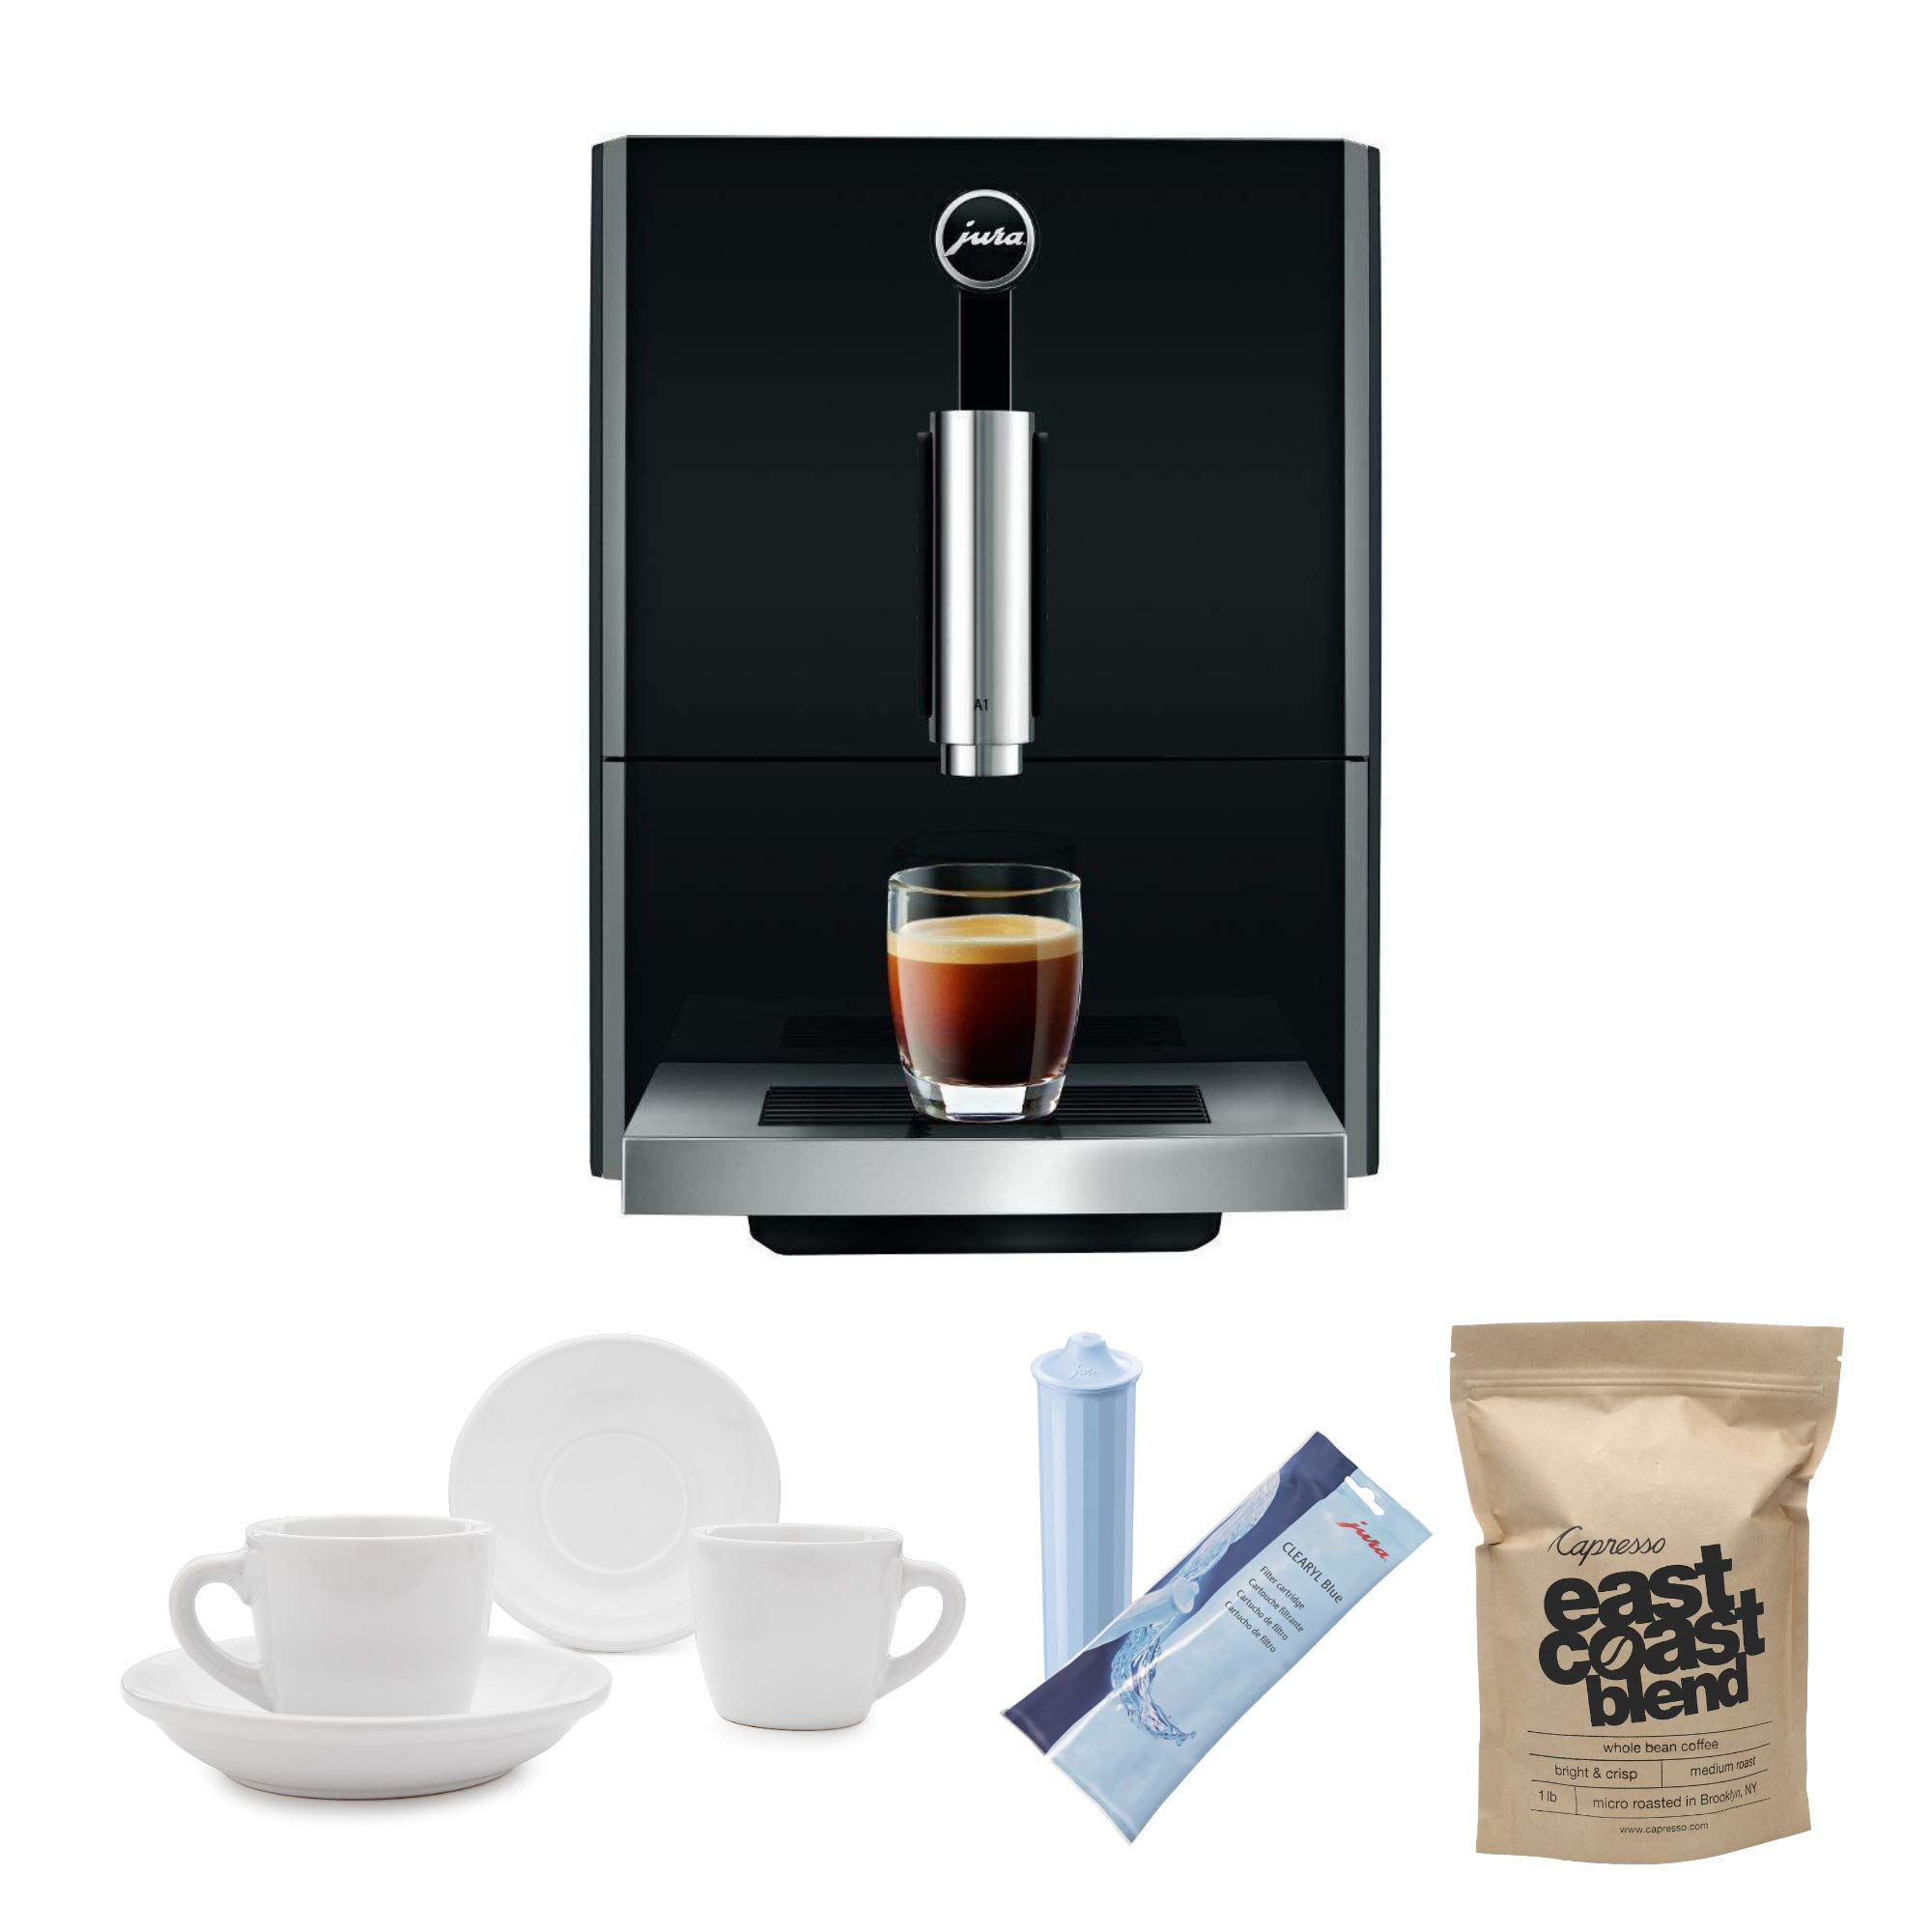 Jura A1 Ultra Compact Coffee Center 15148 with P.E.P. Includes Jura Filter Care Cartridge, Coffee Beans and Set of 2 Ceramic Cups and Saucers by Jura